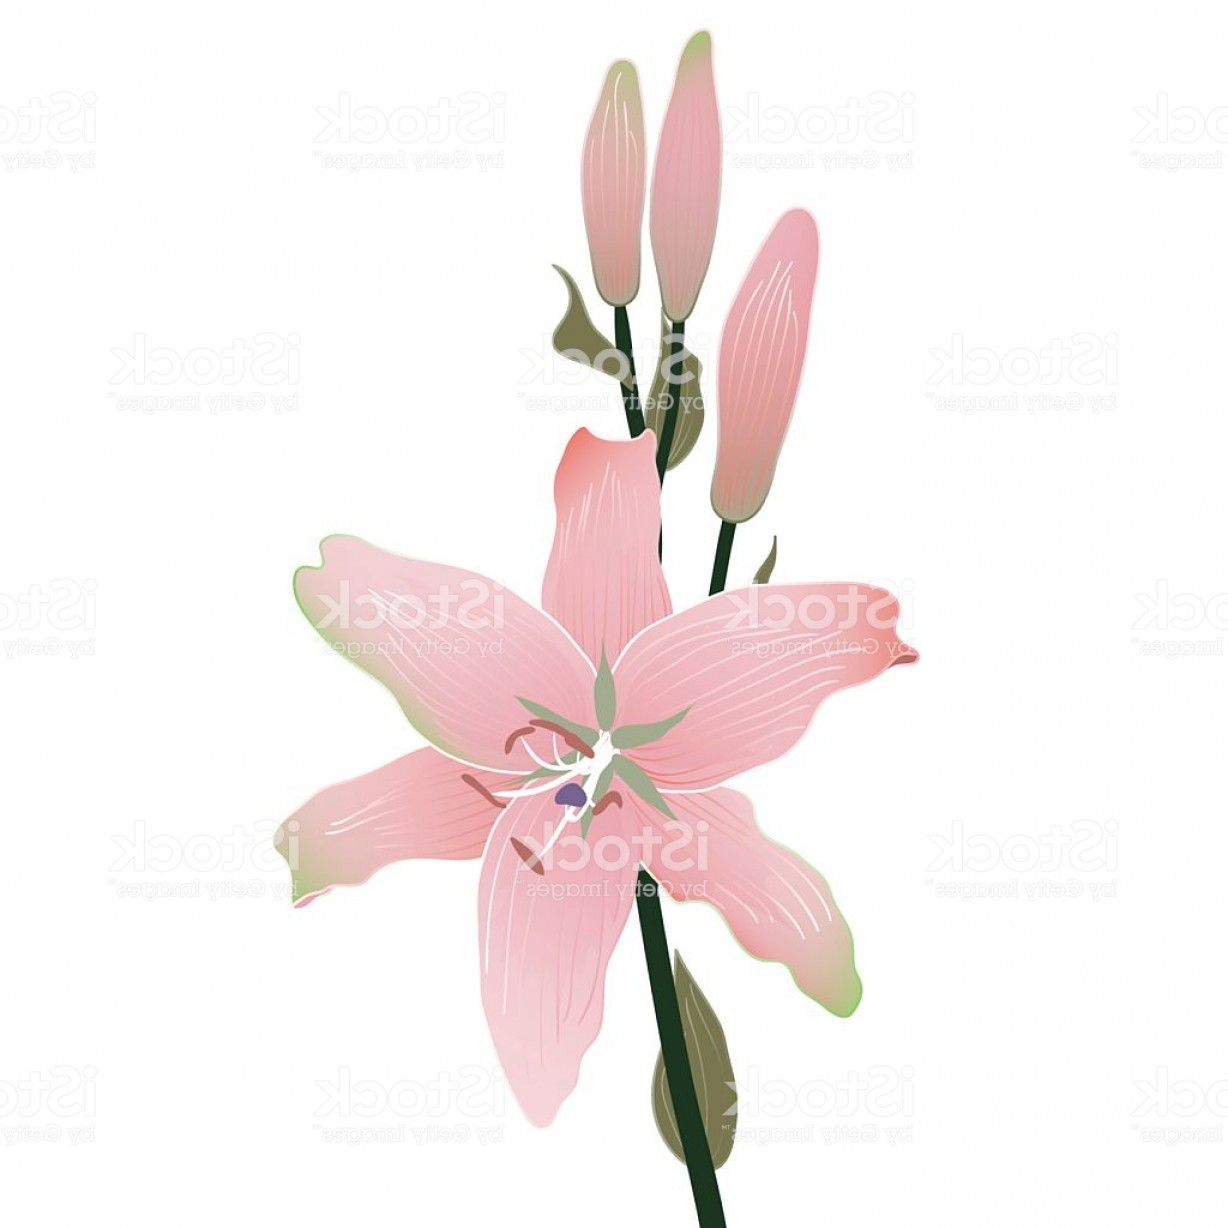 Vector Image Of A Budding Flower: Blooming And Budding Lily Flowers Gm